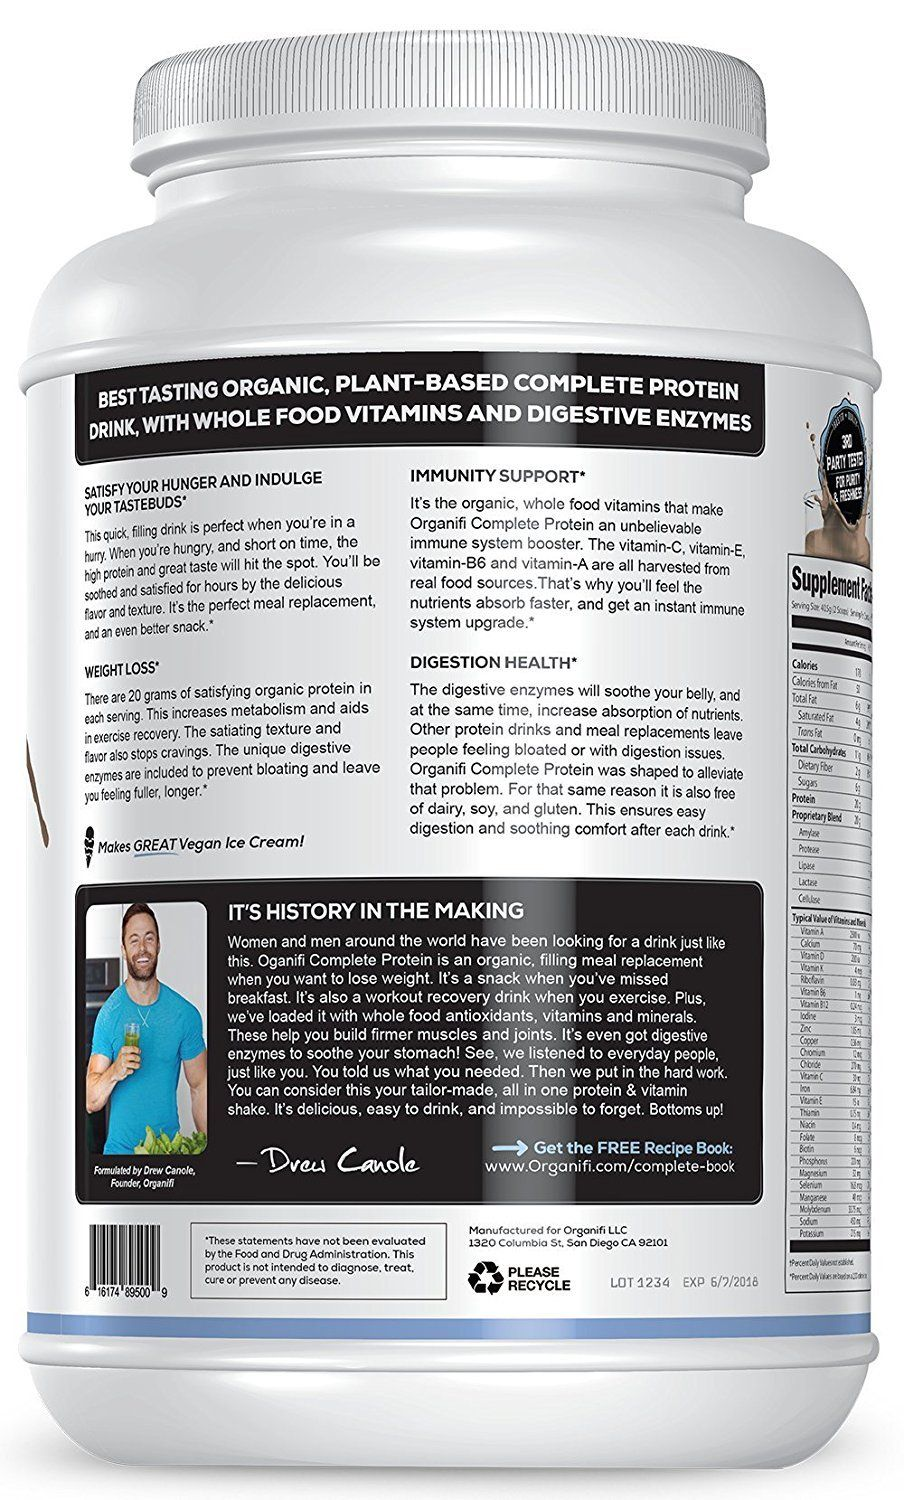 Vegan Protein Powder Organifi Complete Protein Organic Plant Based Protein Drink Meal Replacement S Whole Food Vitamins Protein Drinks Vegan Protein Powder